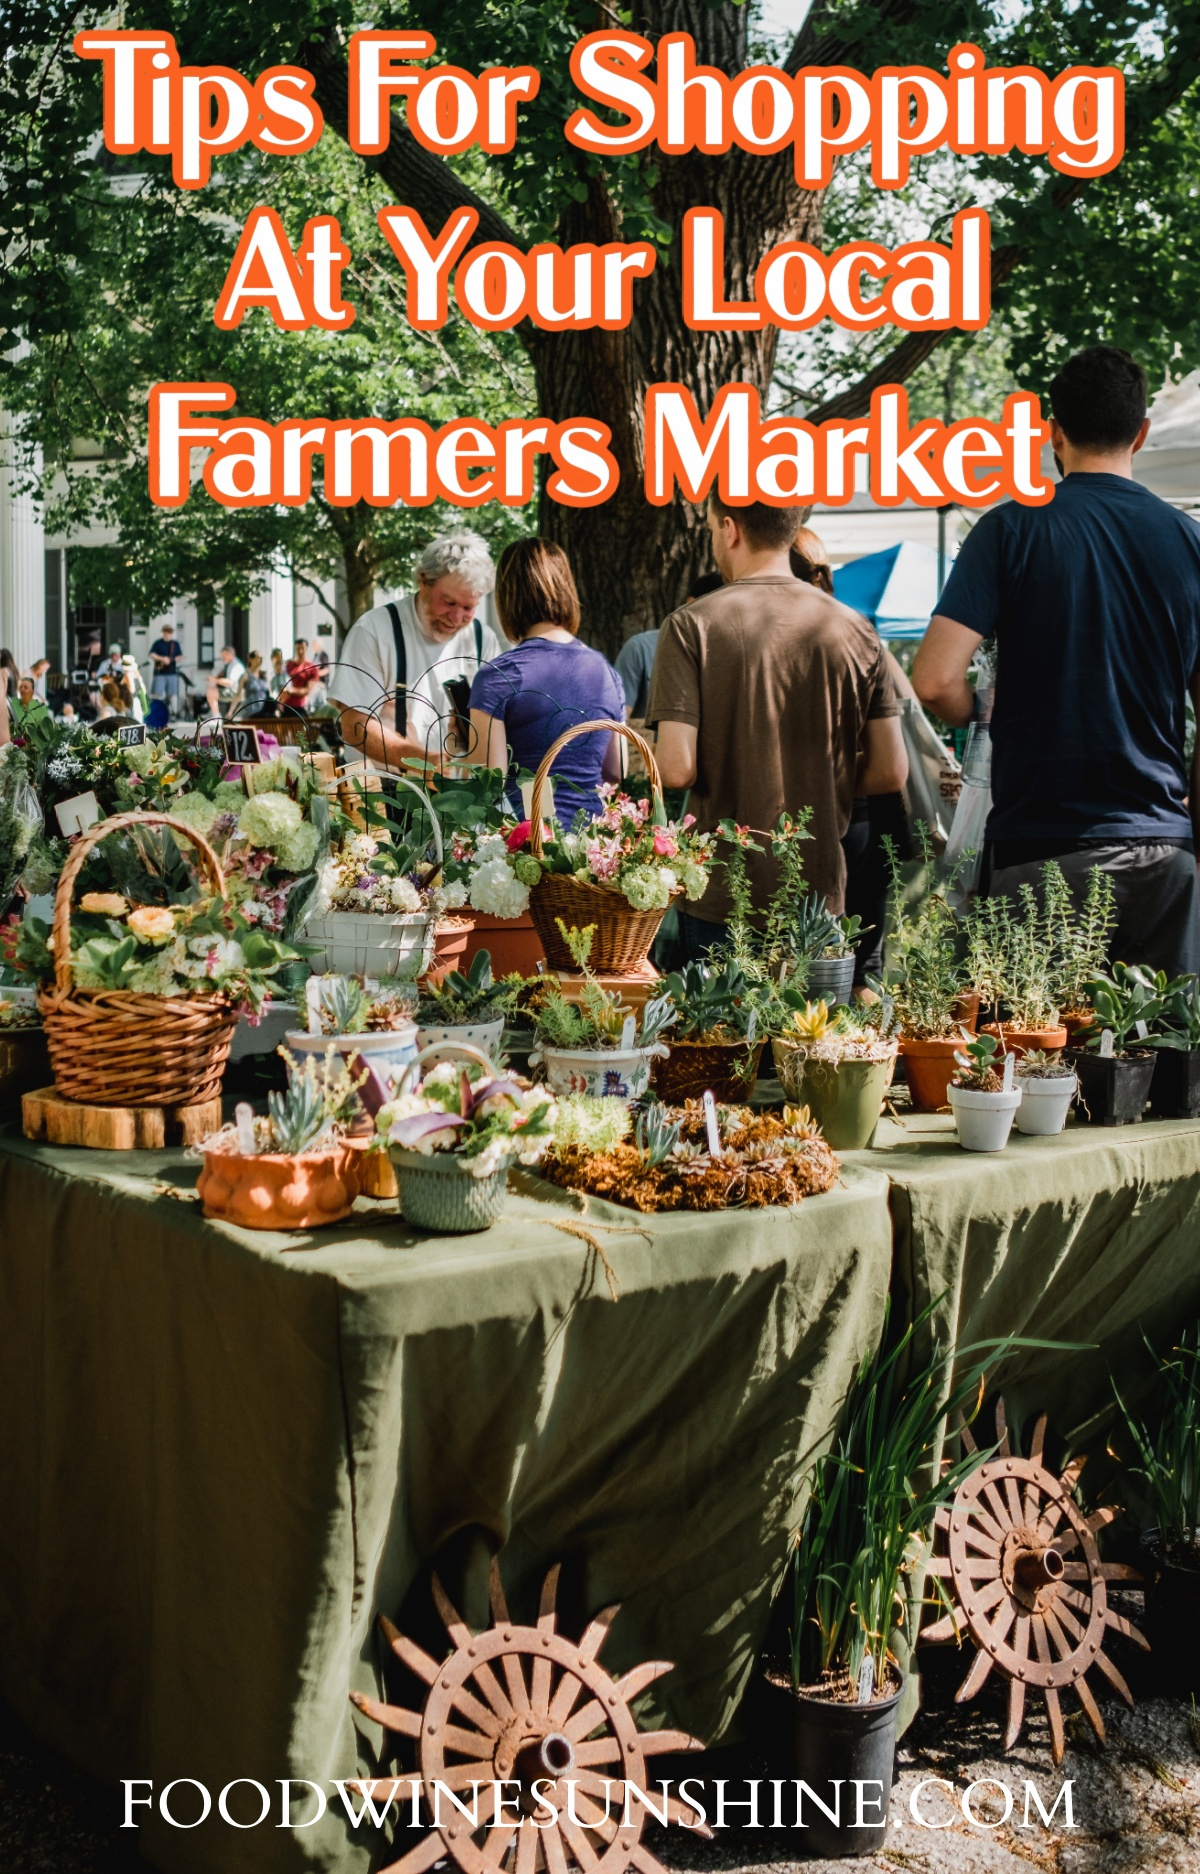 Tips For Shopping At Your Local Farmers Market